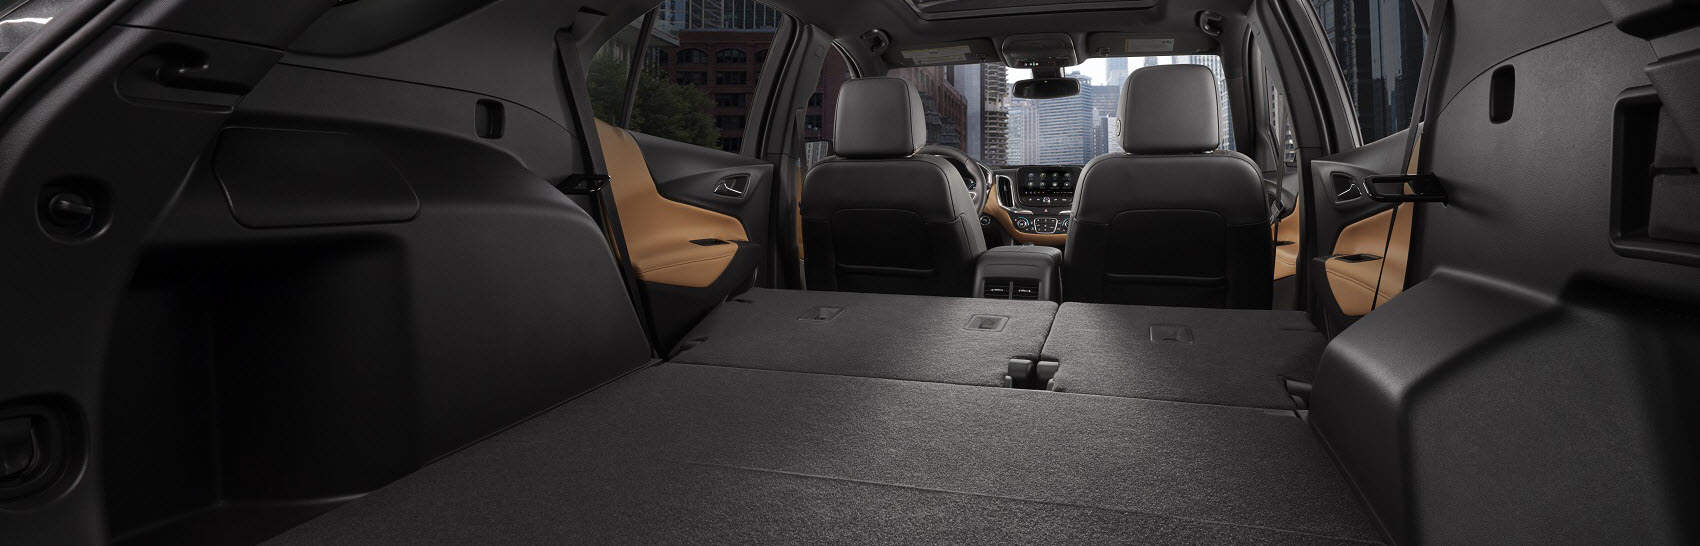 Chevy Equinox Cargo Space